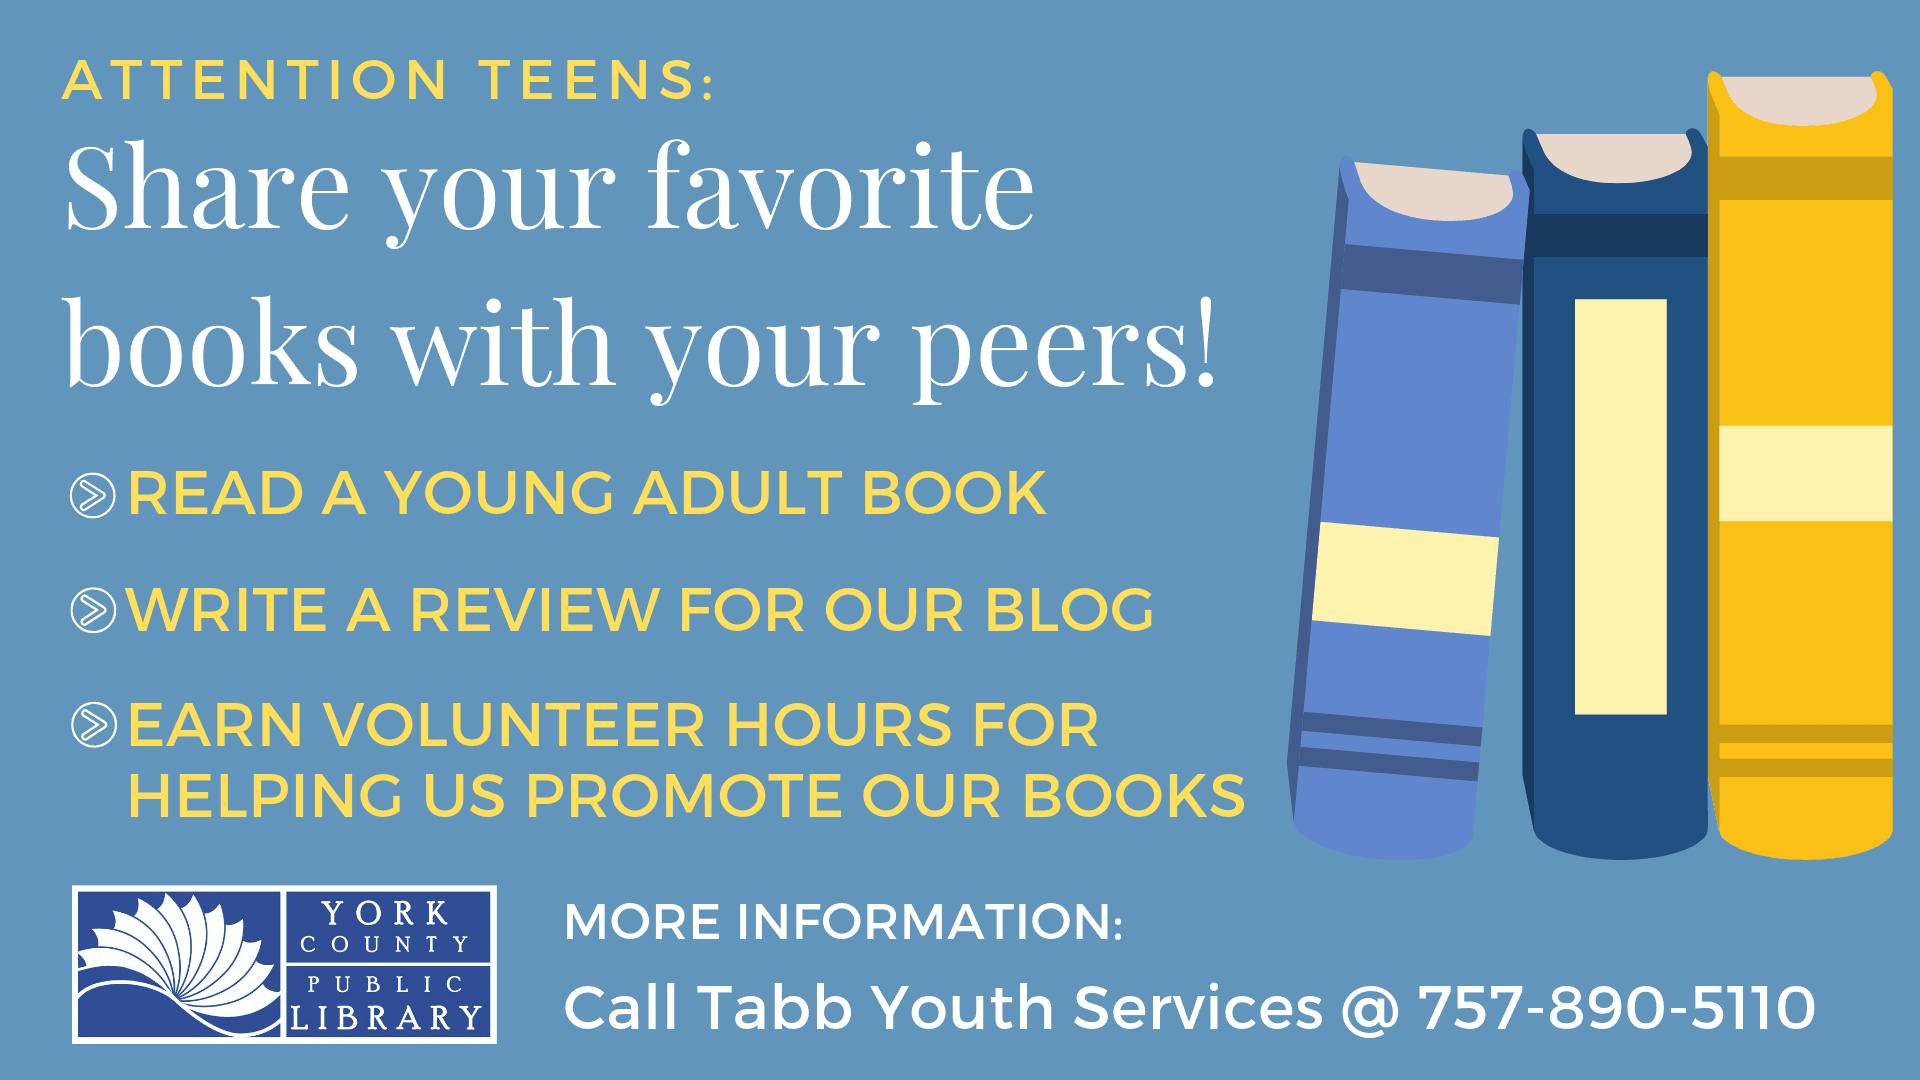 York County Public Library calls for teen book reviews for library blog. Call 757-890-5110.